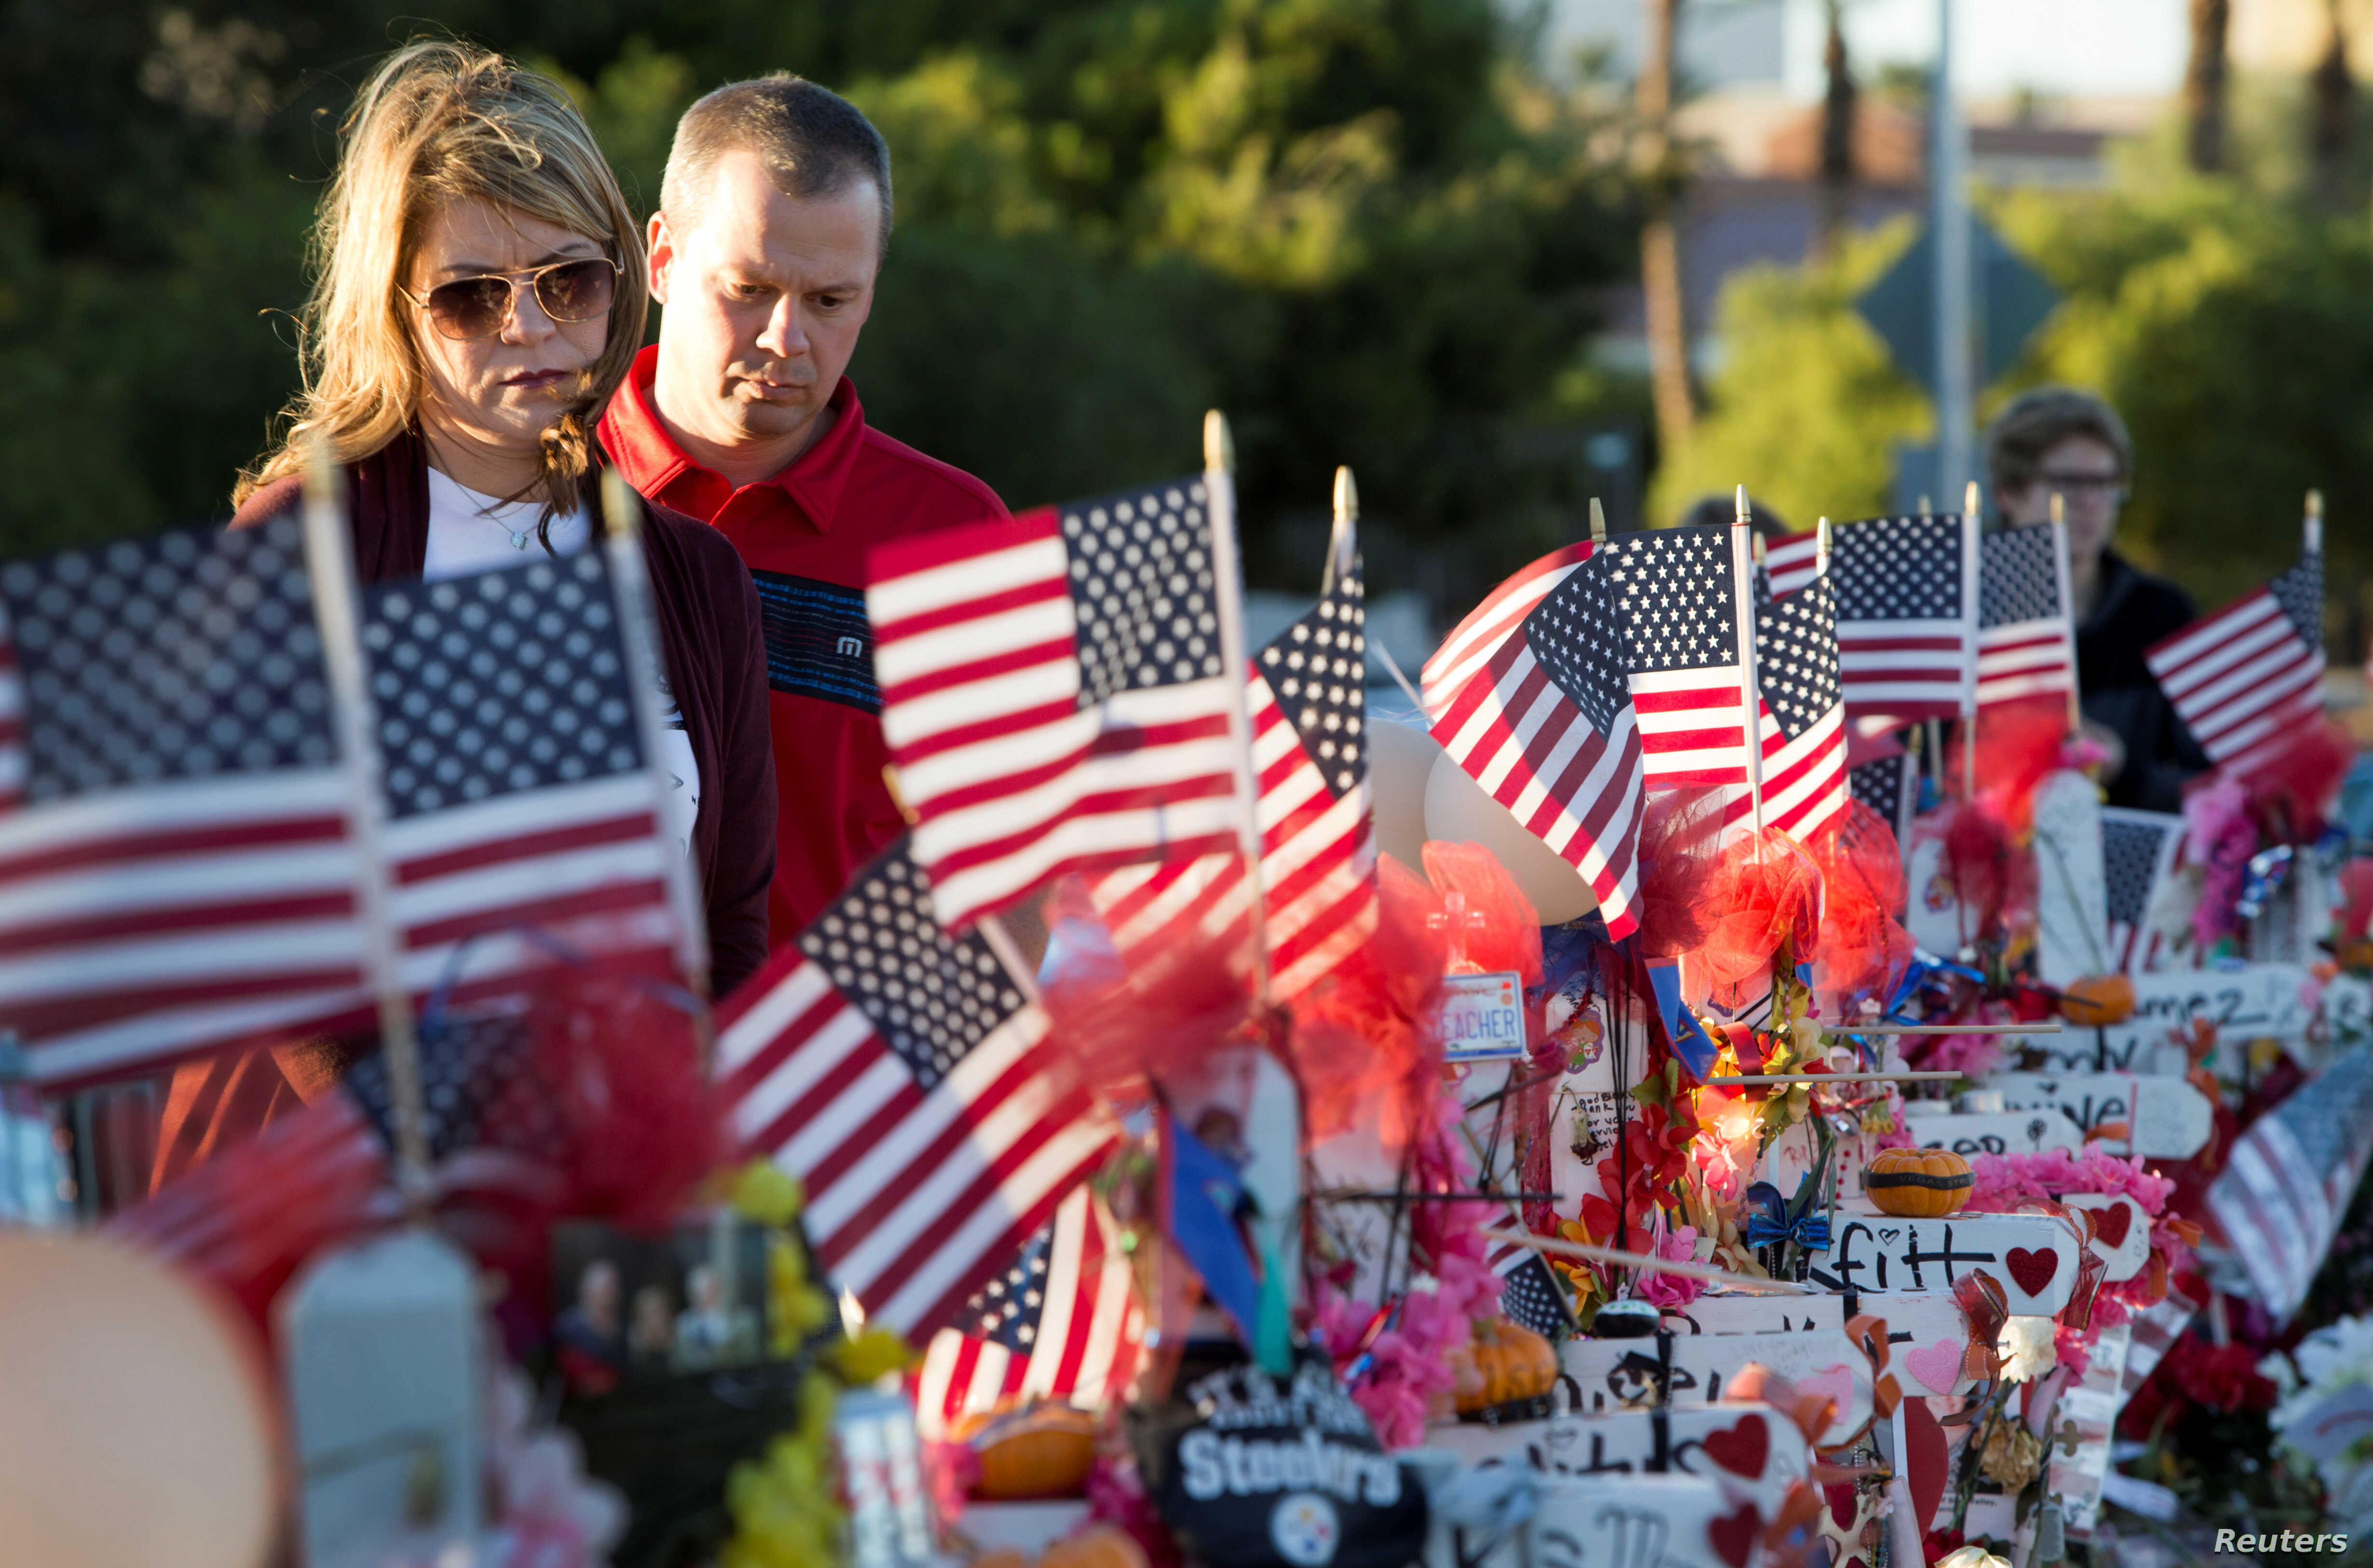 Las Vegas Hotel Sues 2017 Mass Shooting Victims Voice Of America English